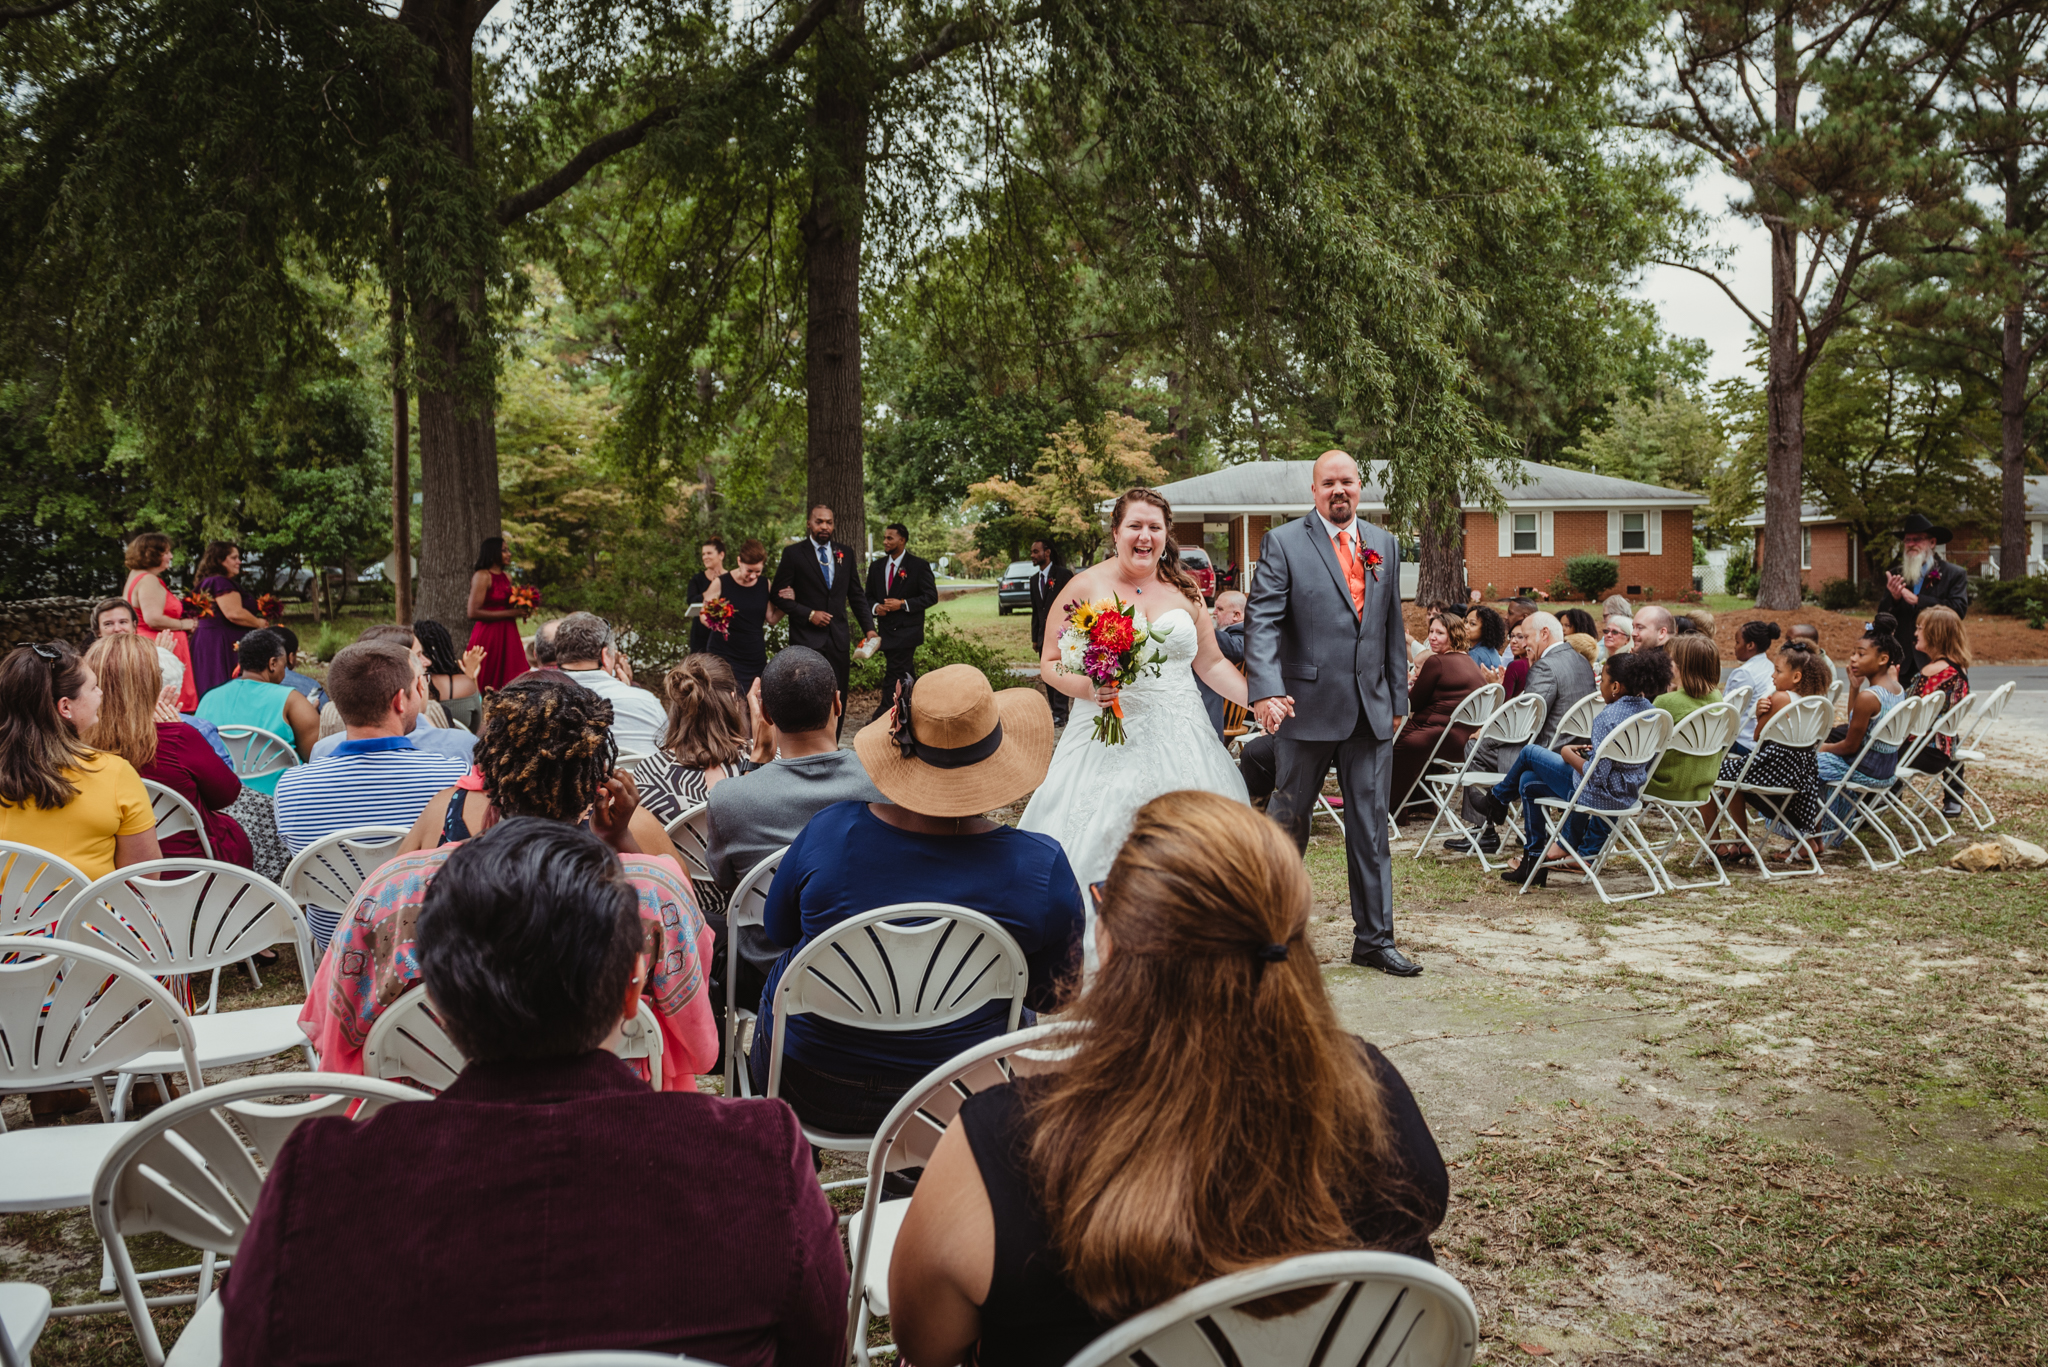 raleigh-wedding-ceremony-down-the-aisle-cd.jpg